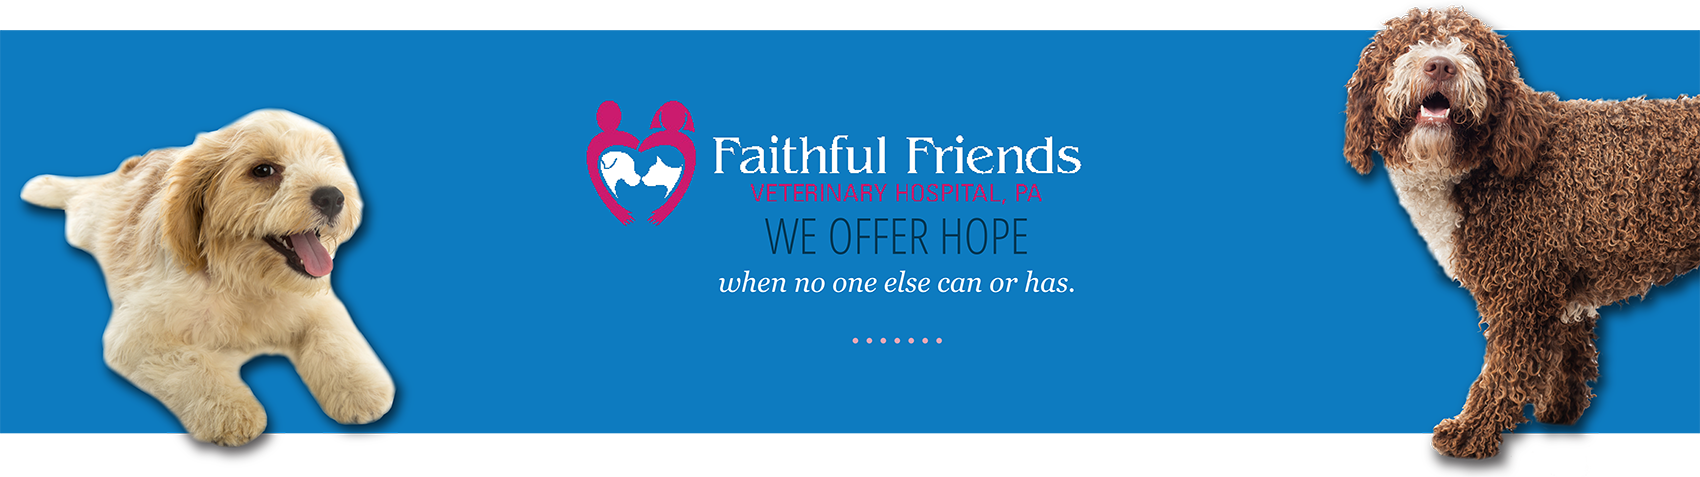 faithfulFriend-featBanner